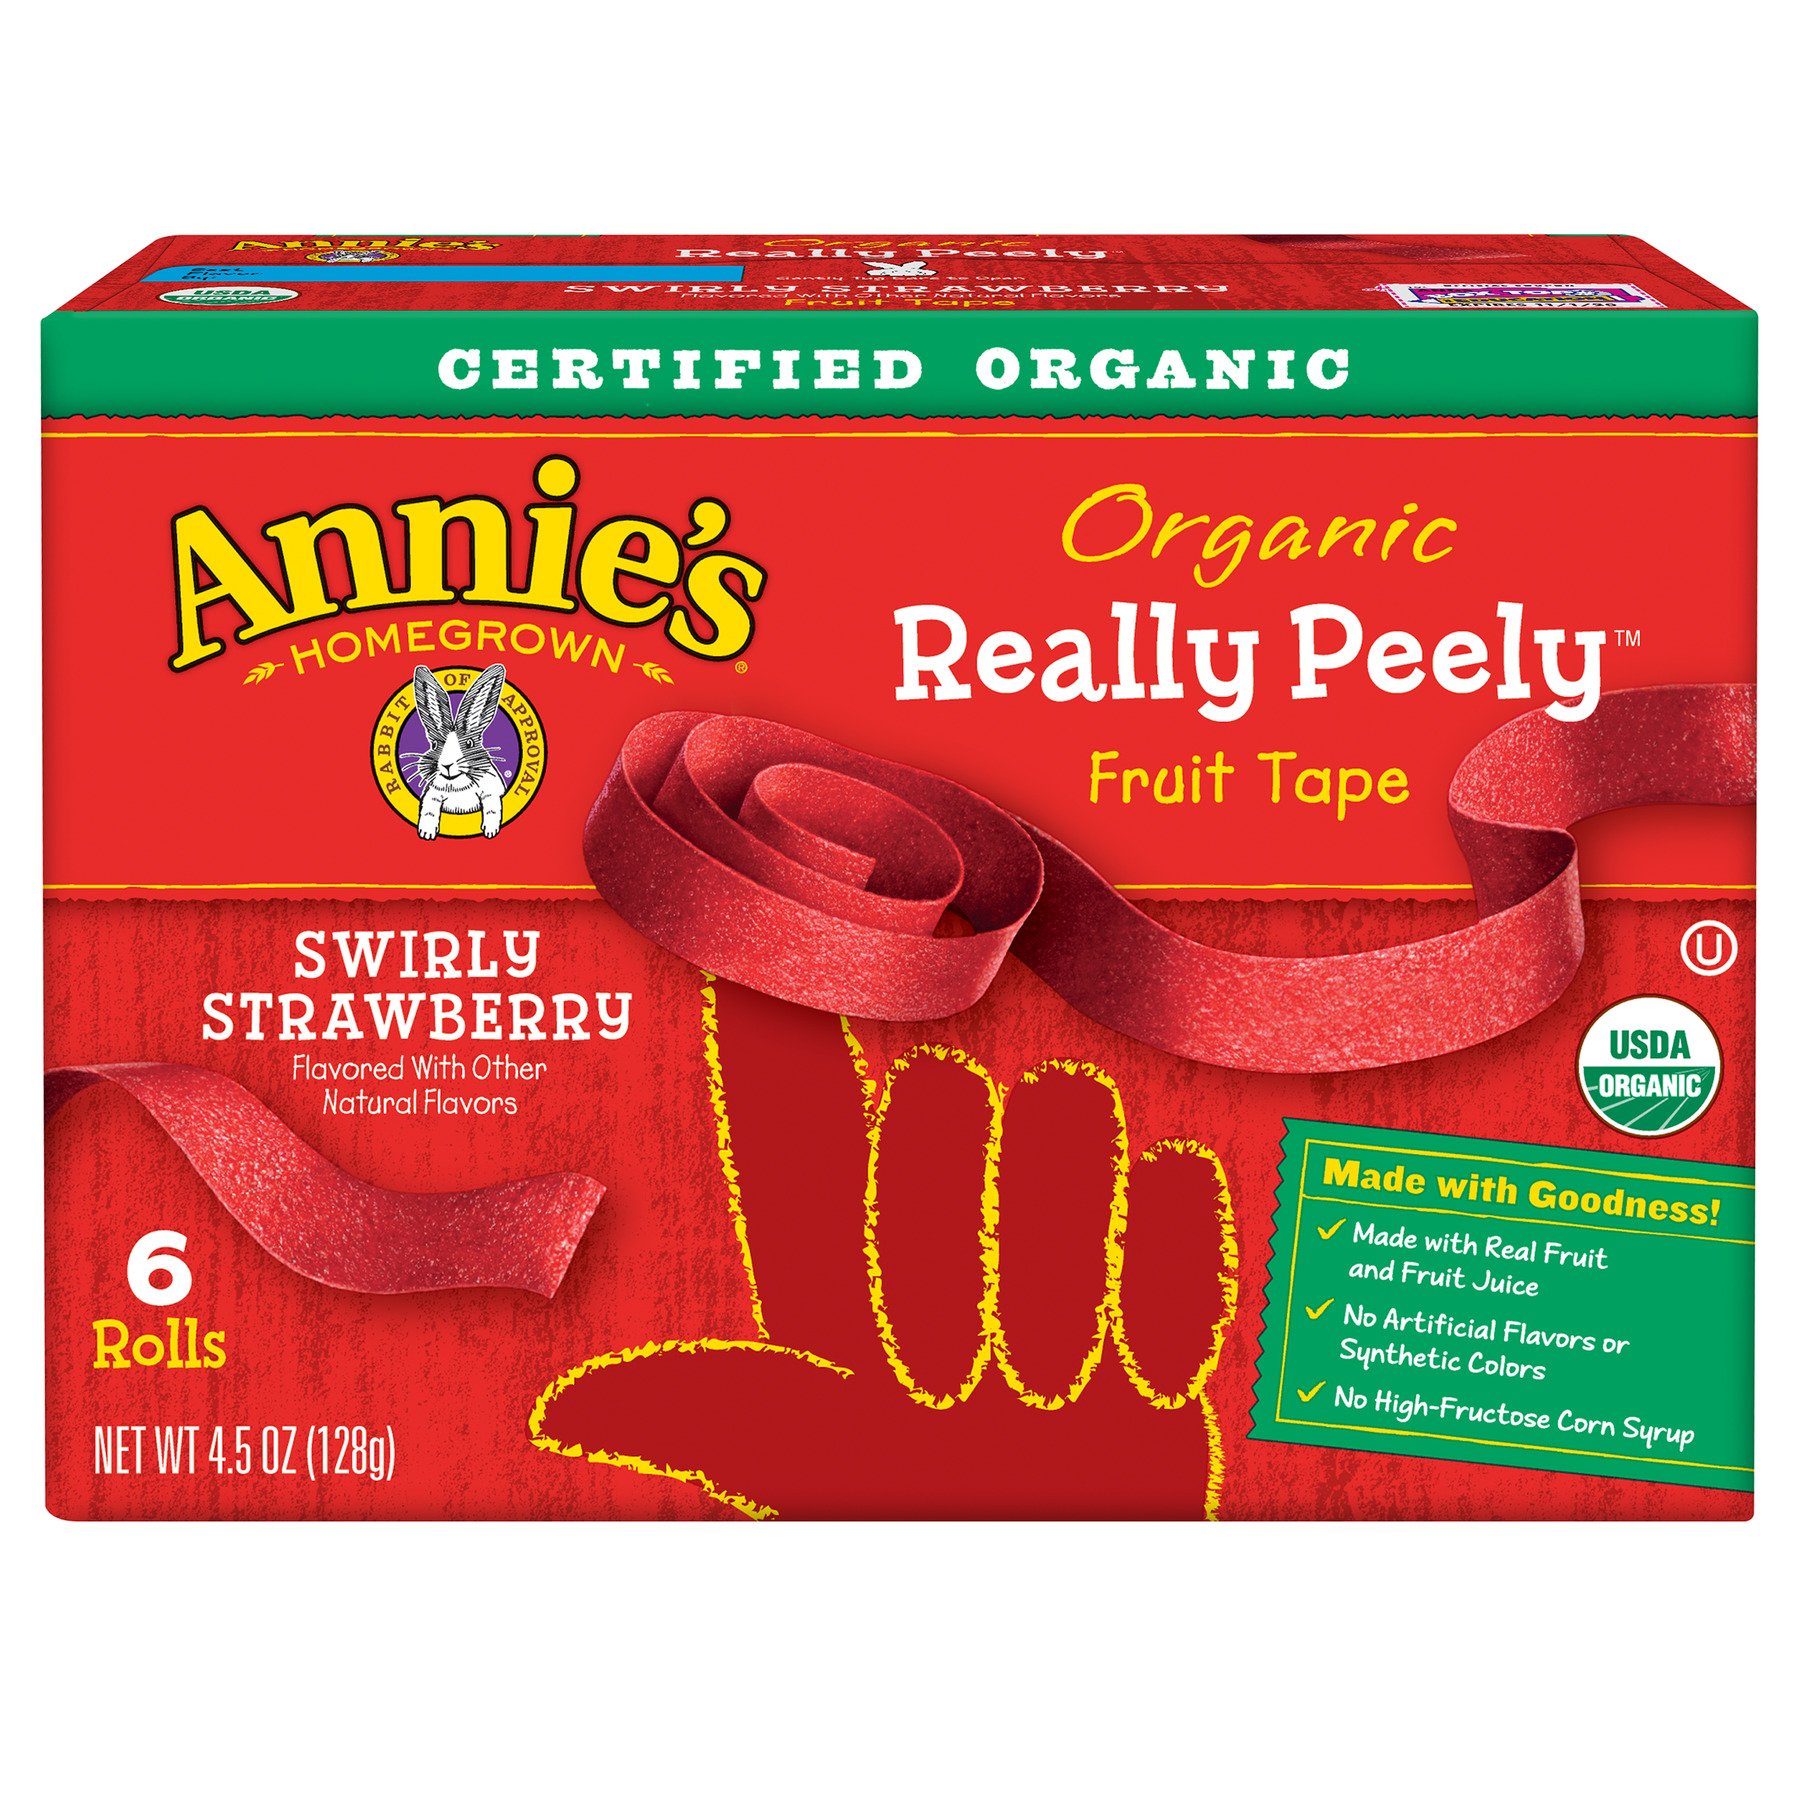 (2 Pack) Annie's Organic Really Peely Fruit Tape Swirly Strawberry 6 ct 4.5 oz